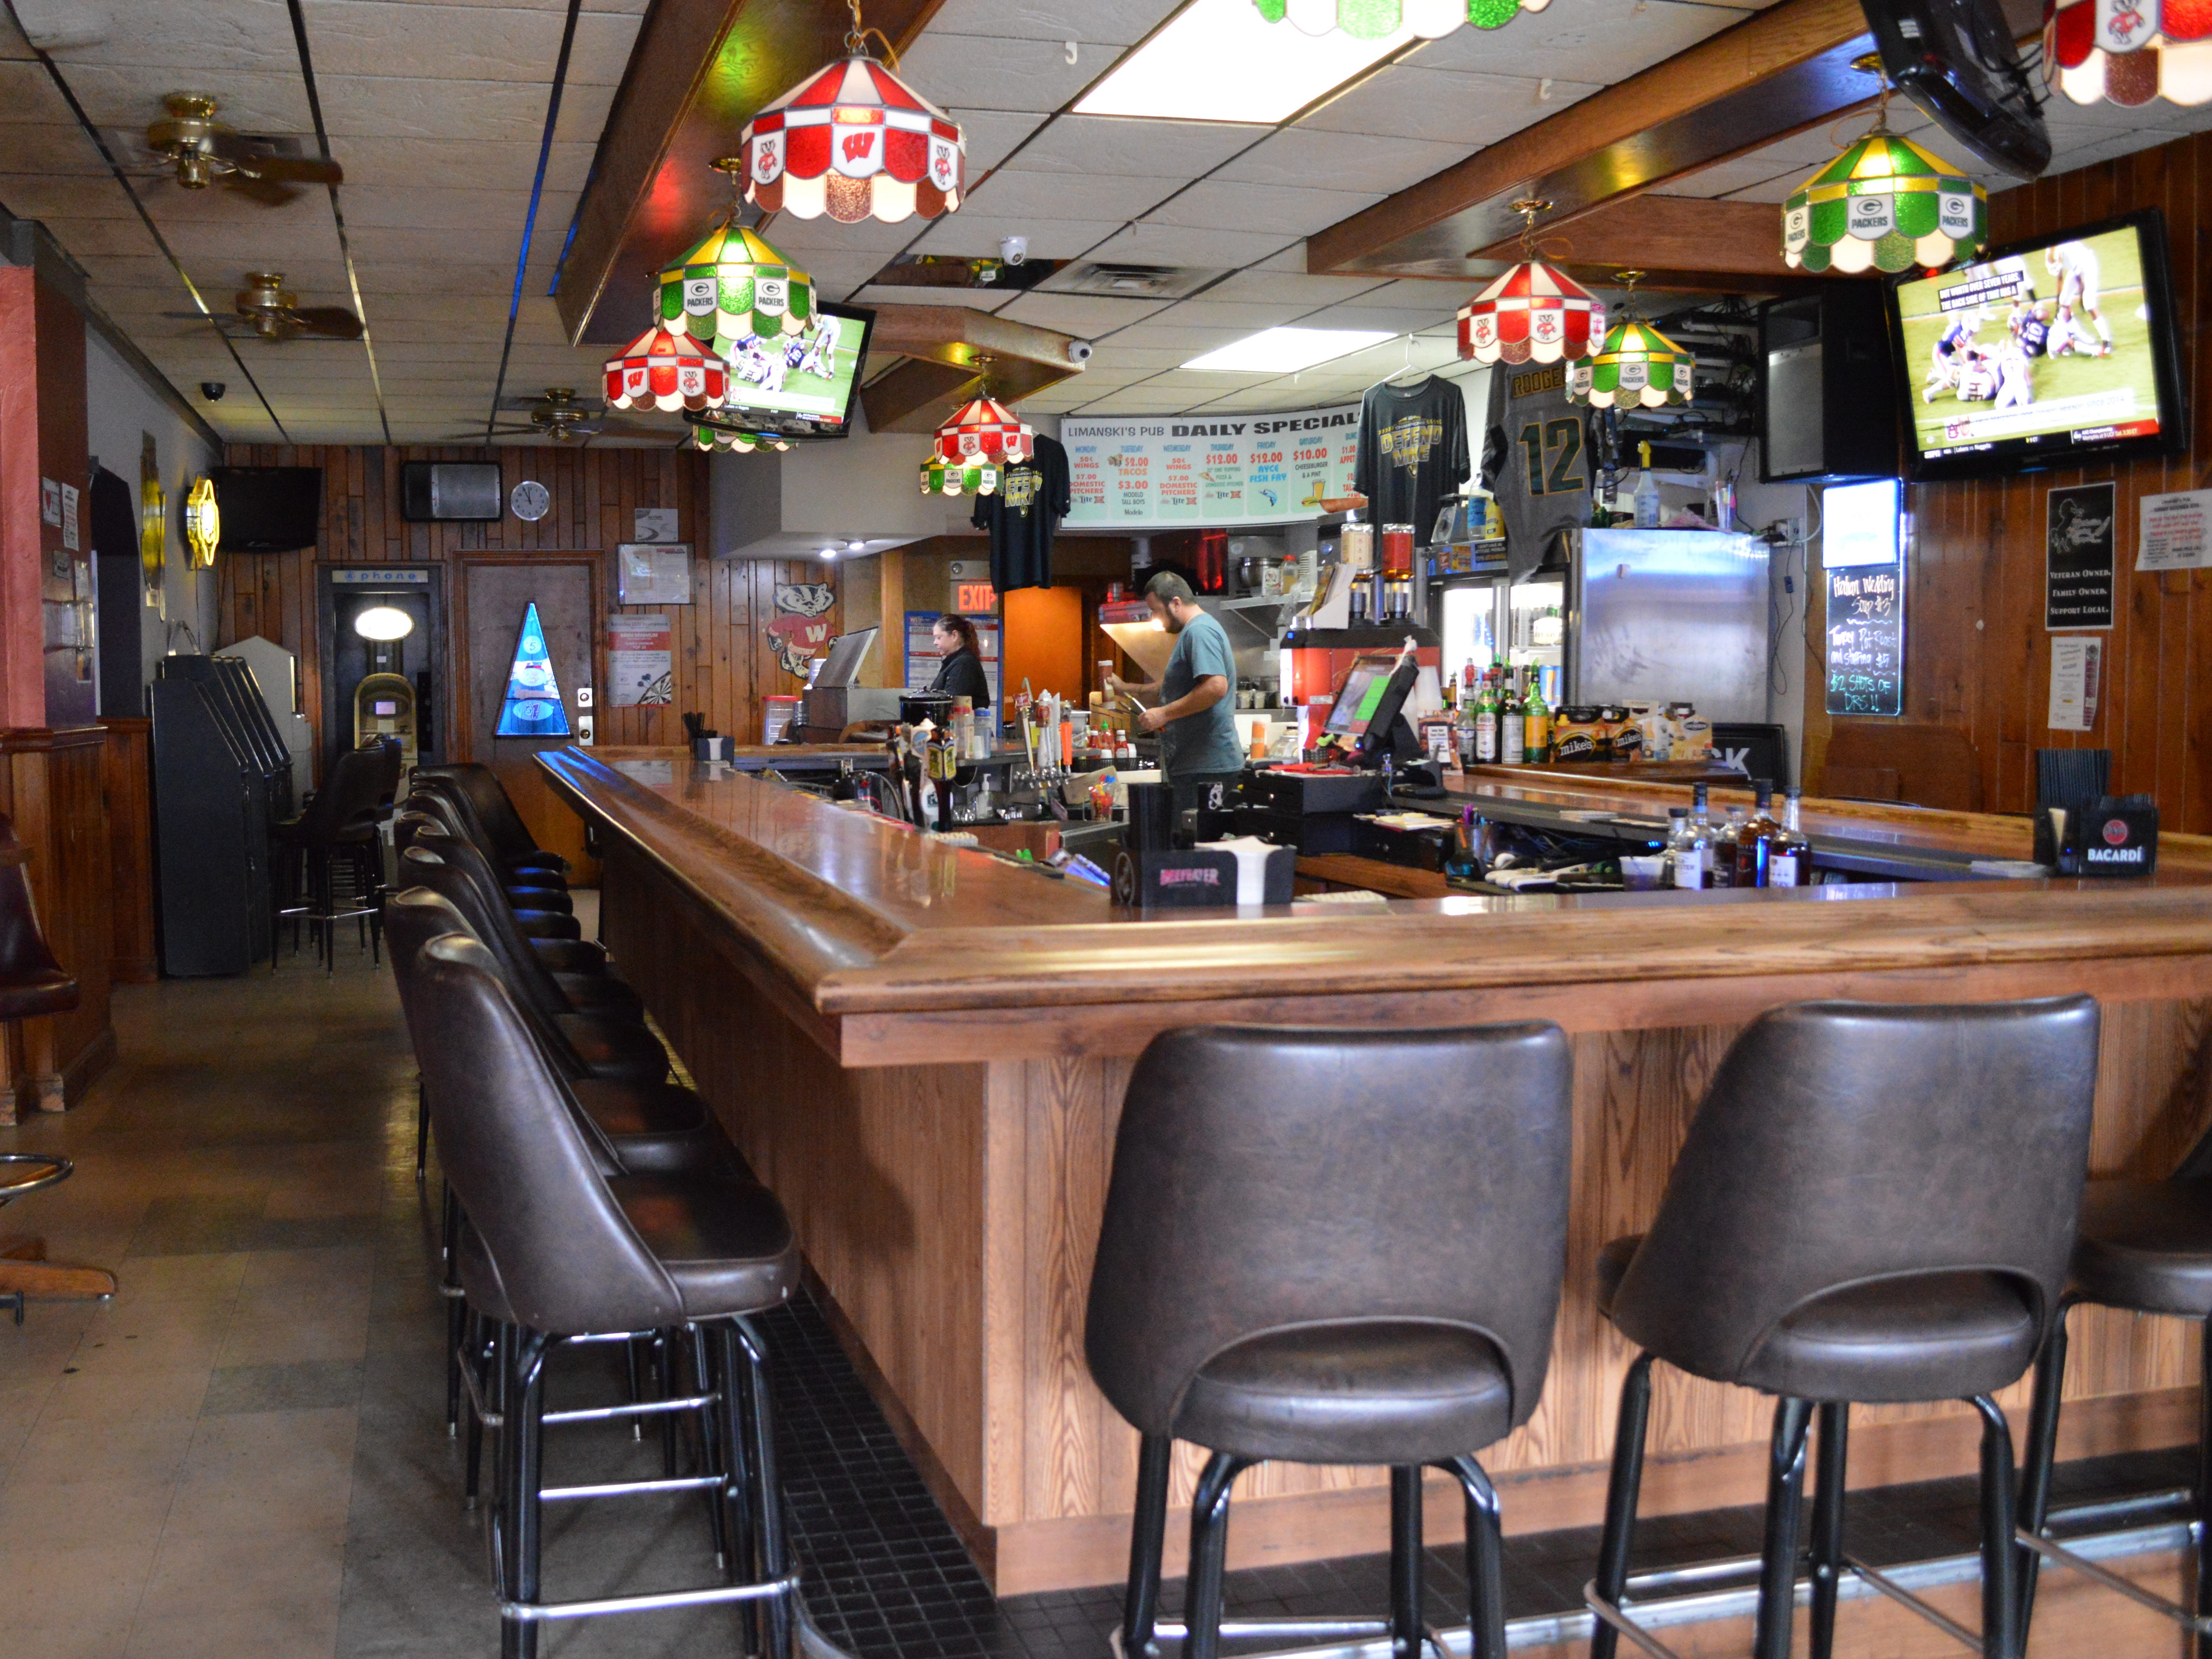 Most of the menu at Limanski's Pub is made in-house, including burgers, wings and pizzas, said Kat Limanski, owner and chef.